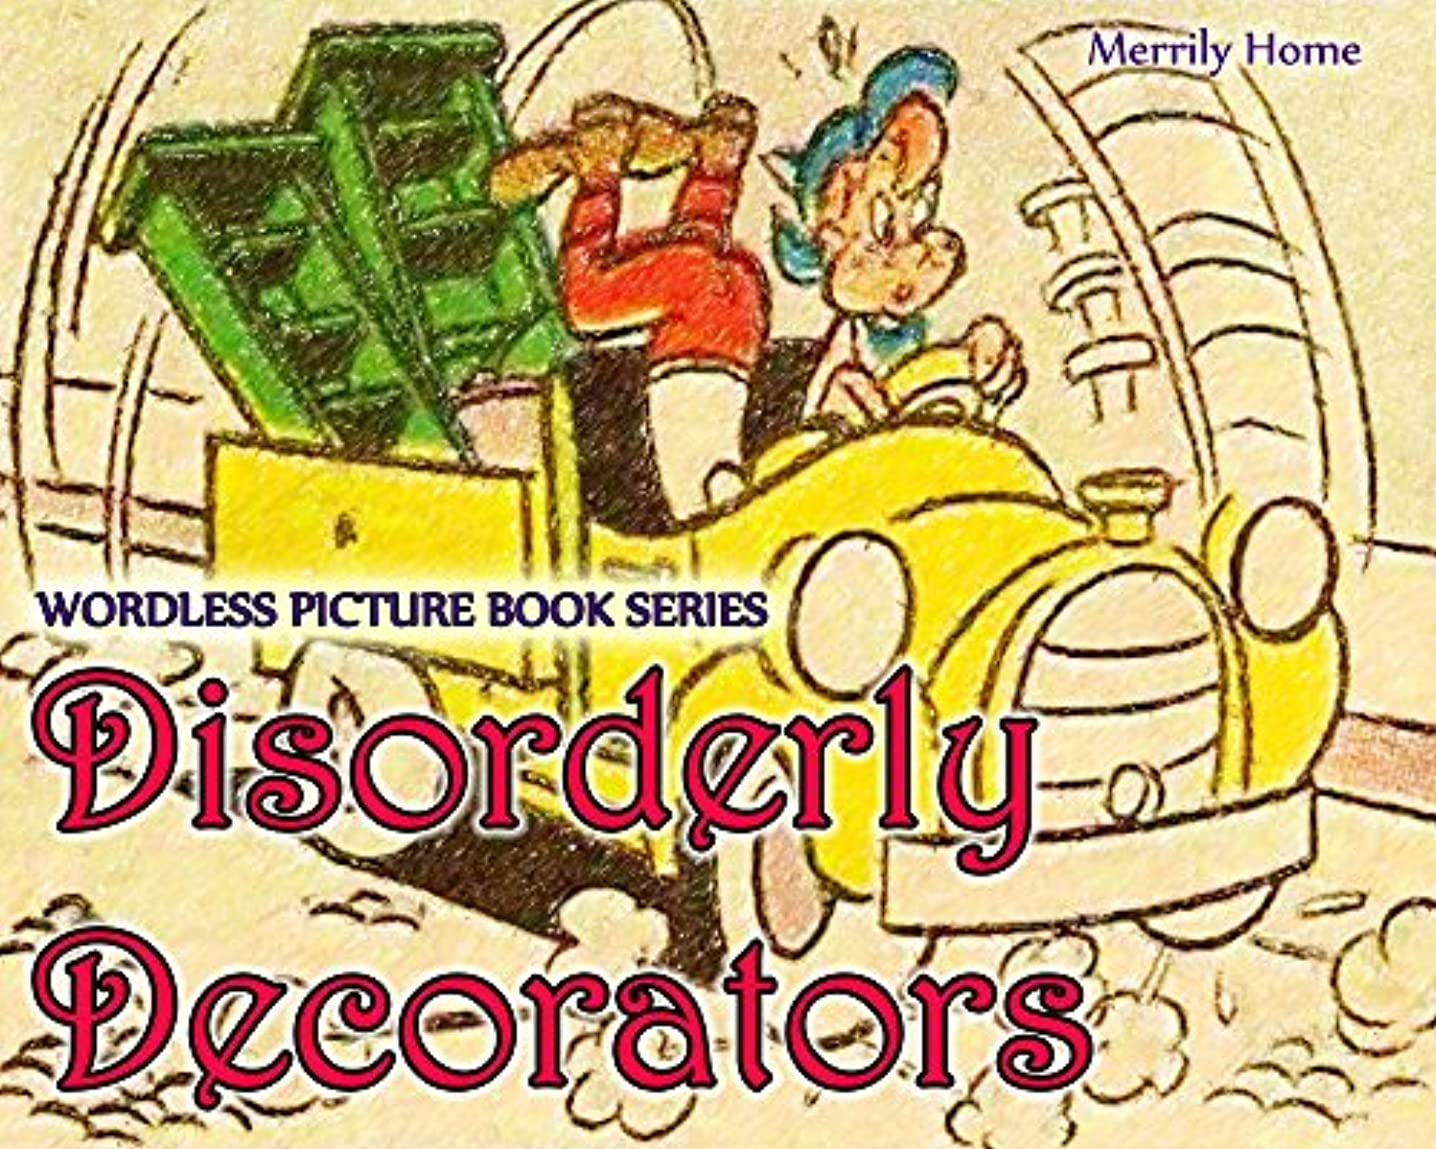 Wordless Picture Book Series - Disorderly Decorators: (Stories without words for children) (bedtime stories, educational children's books, fun kids books, ... children's kindle books, illustrated ki)